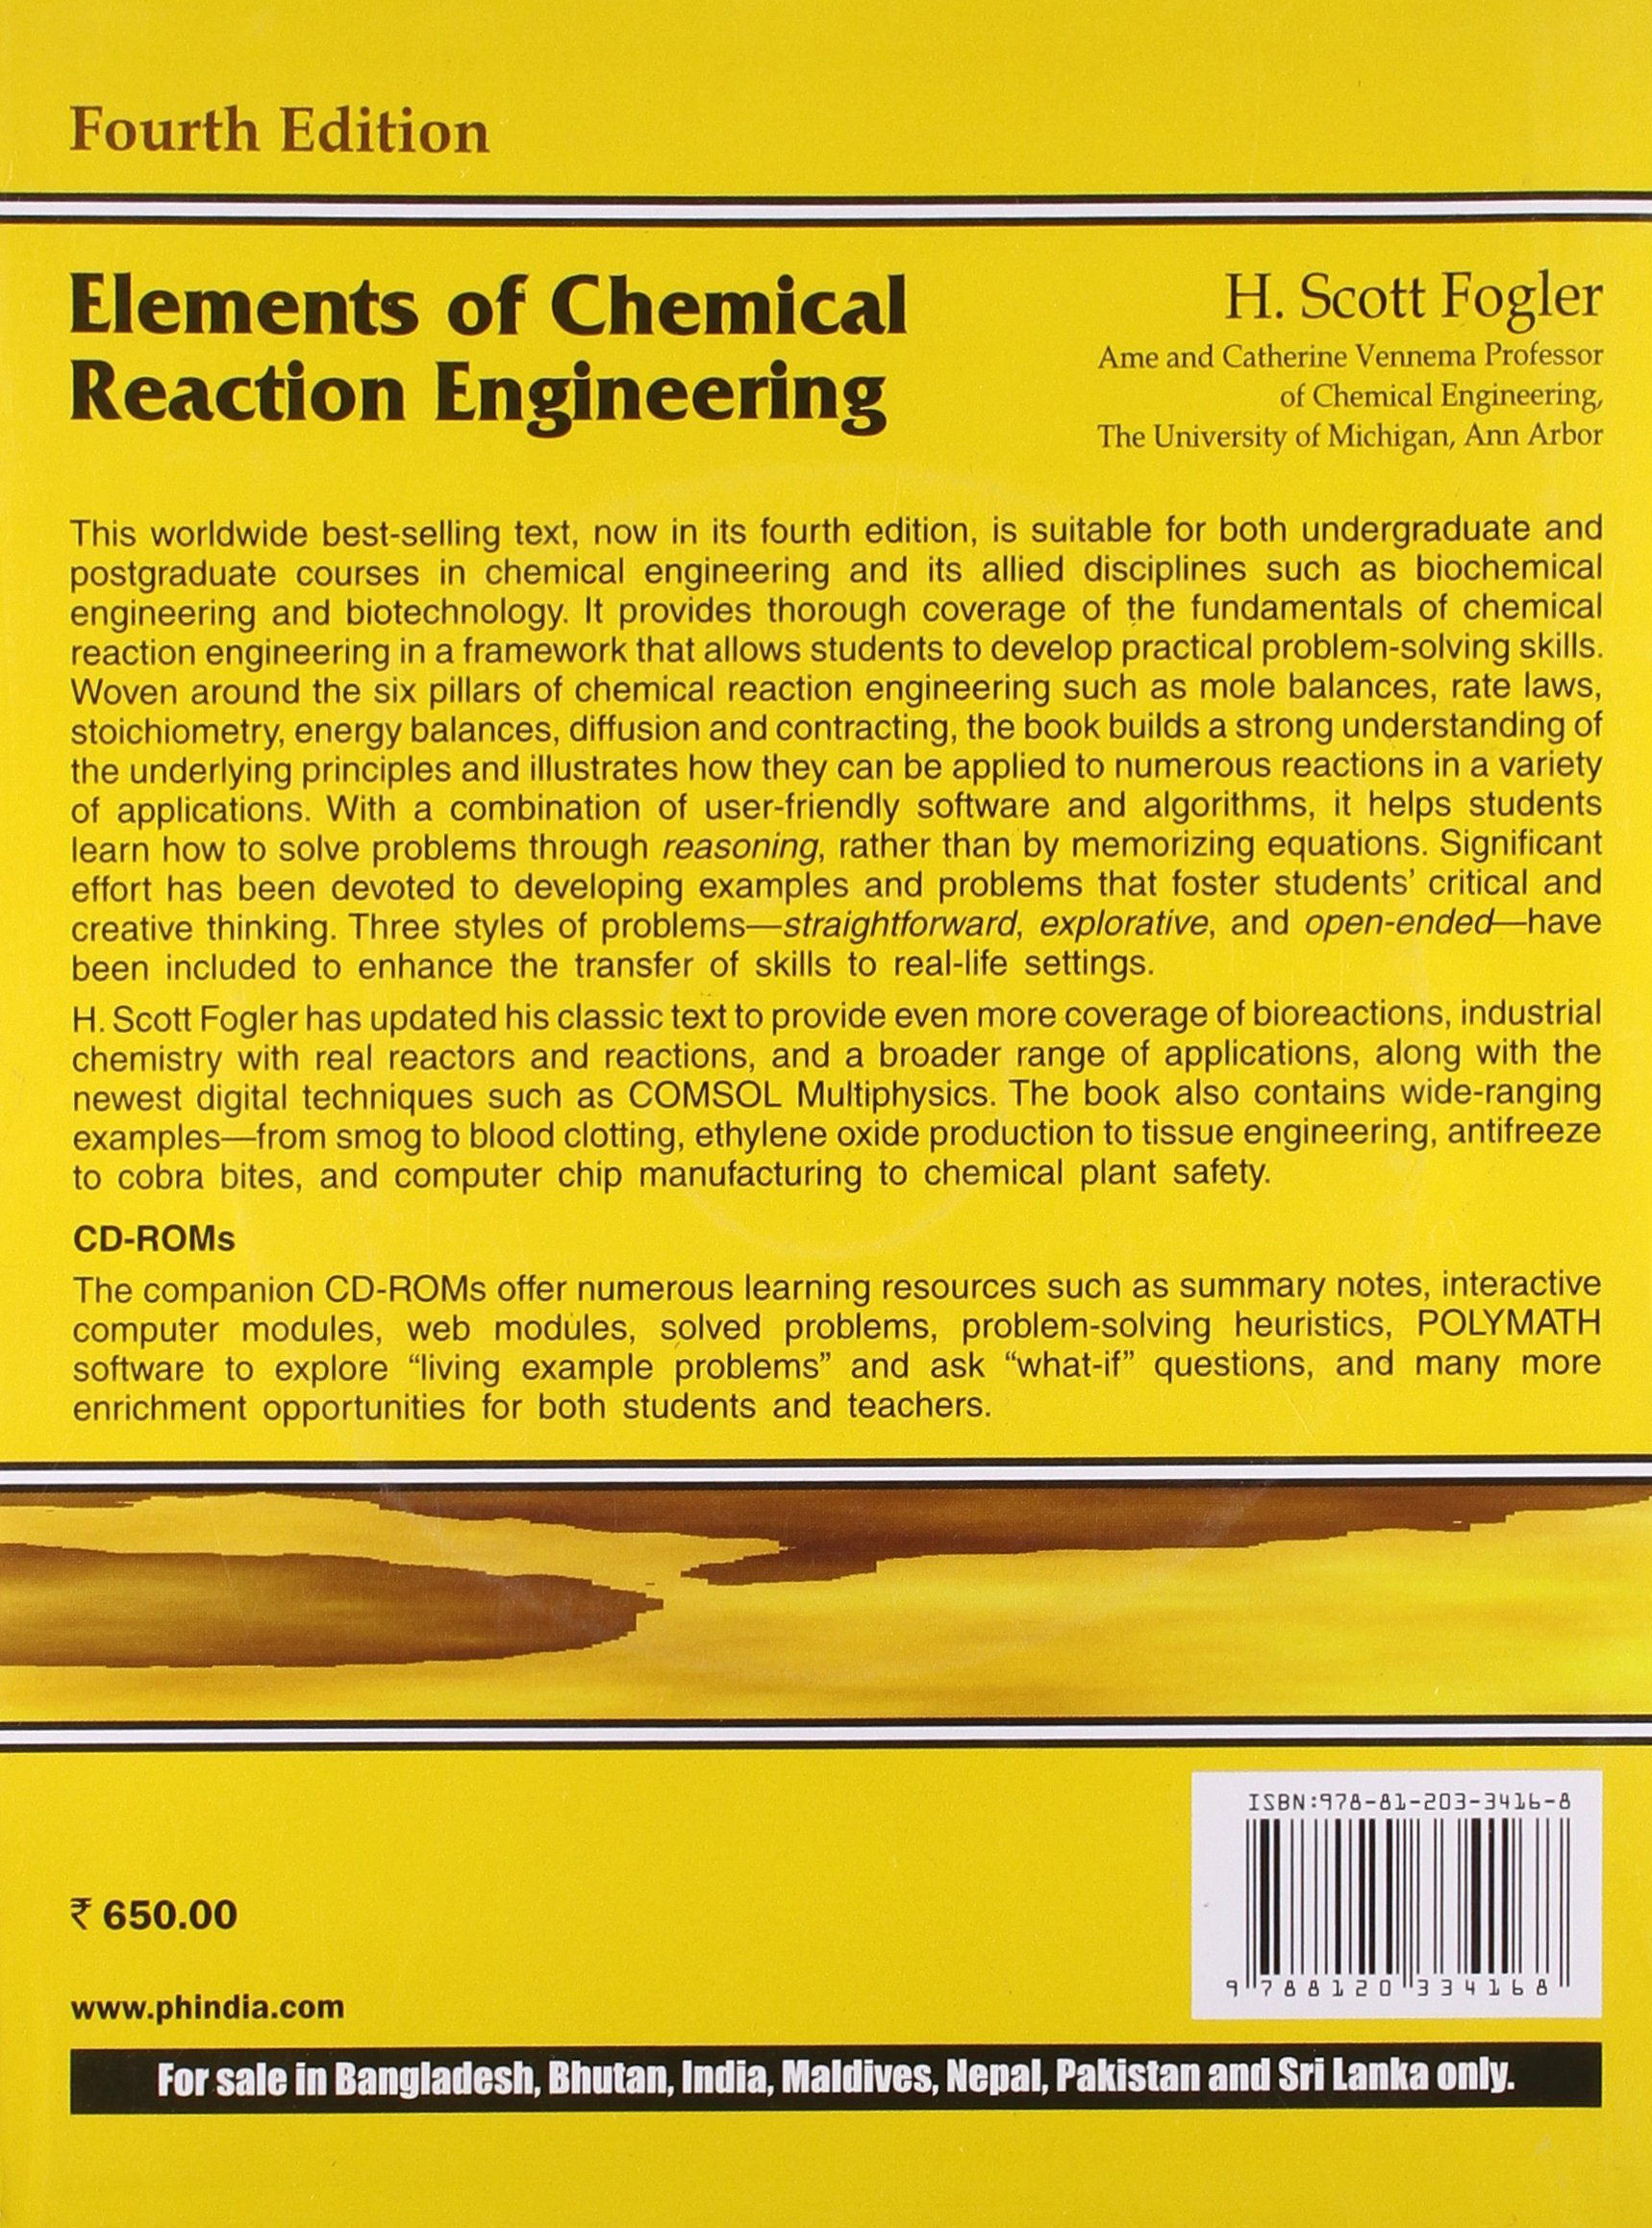 elements of chemical reaction engineering h scott fogler elements of chemical reaction engineering h scott fogler 9787502741006 com books